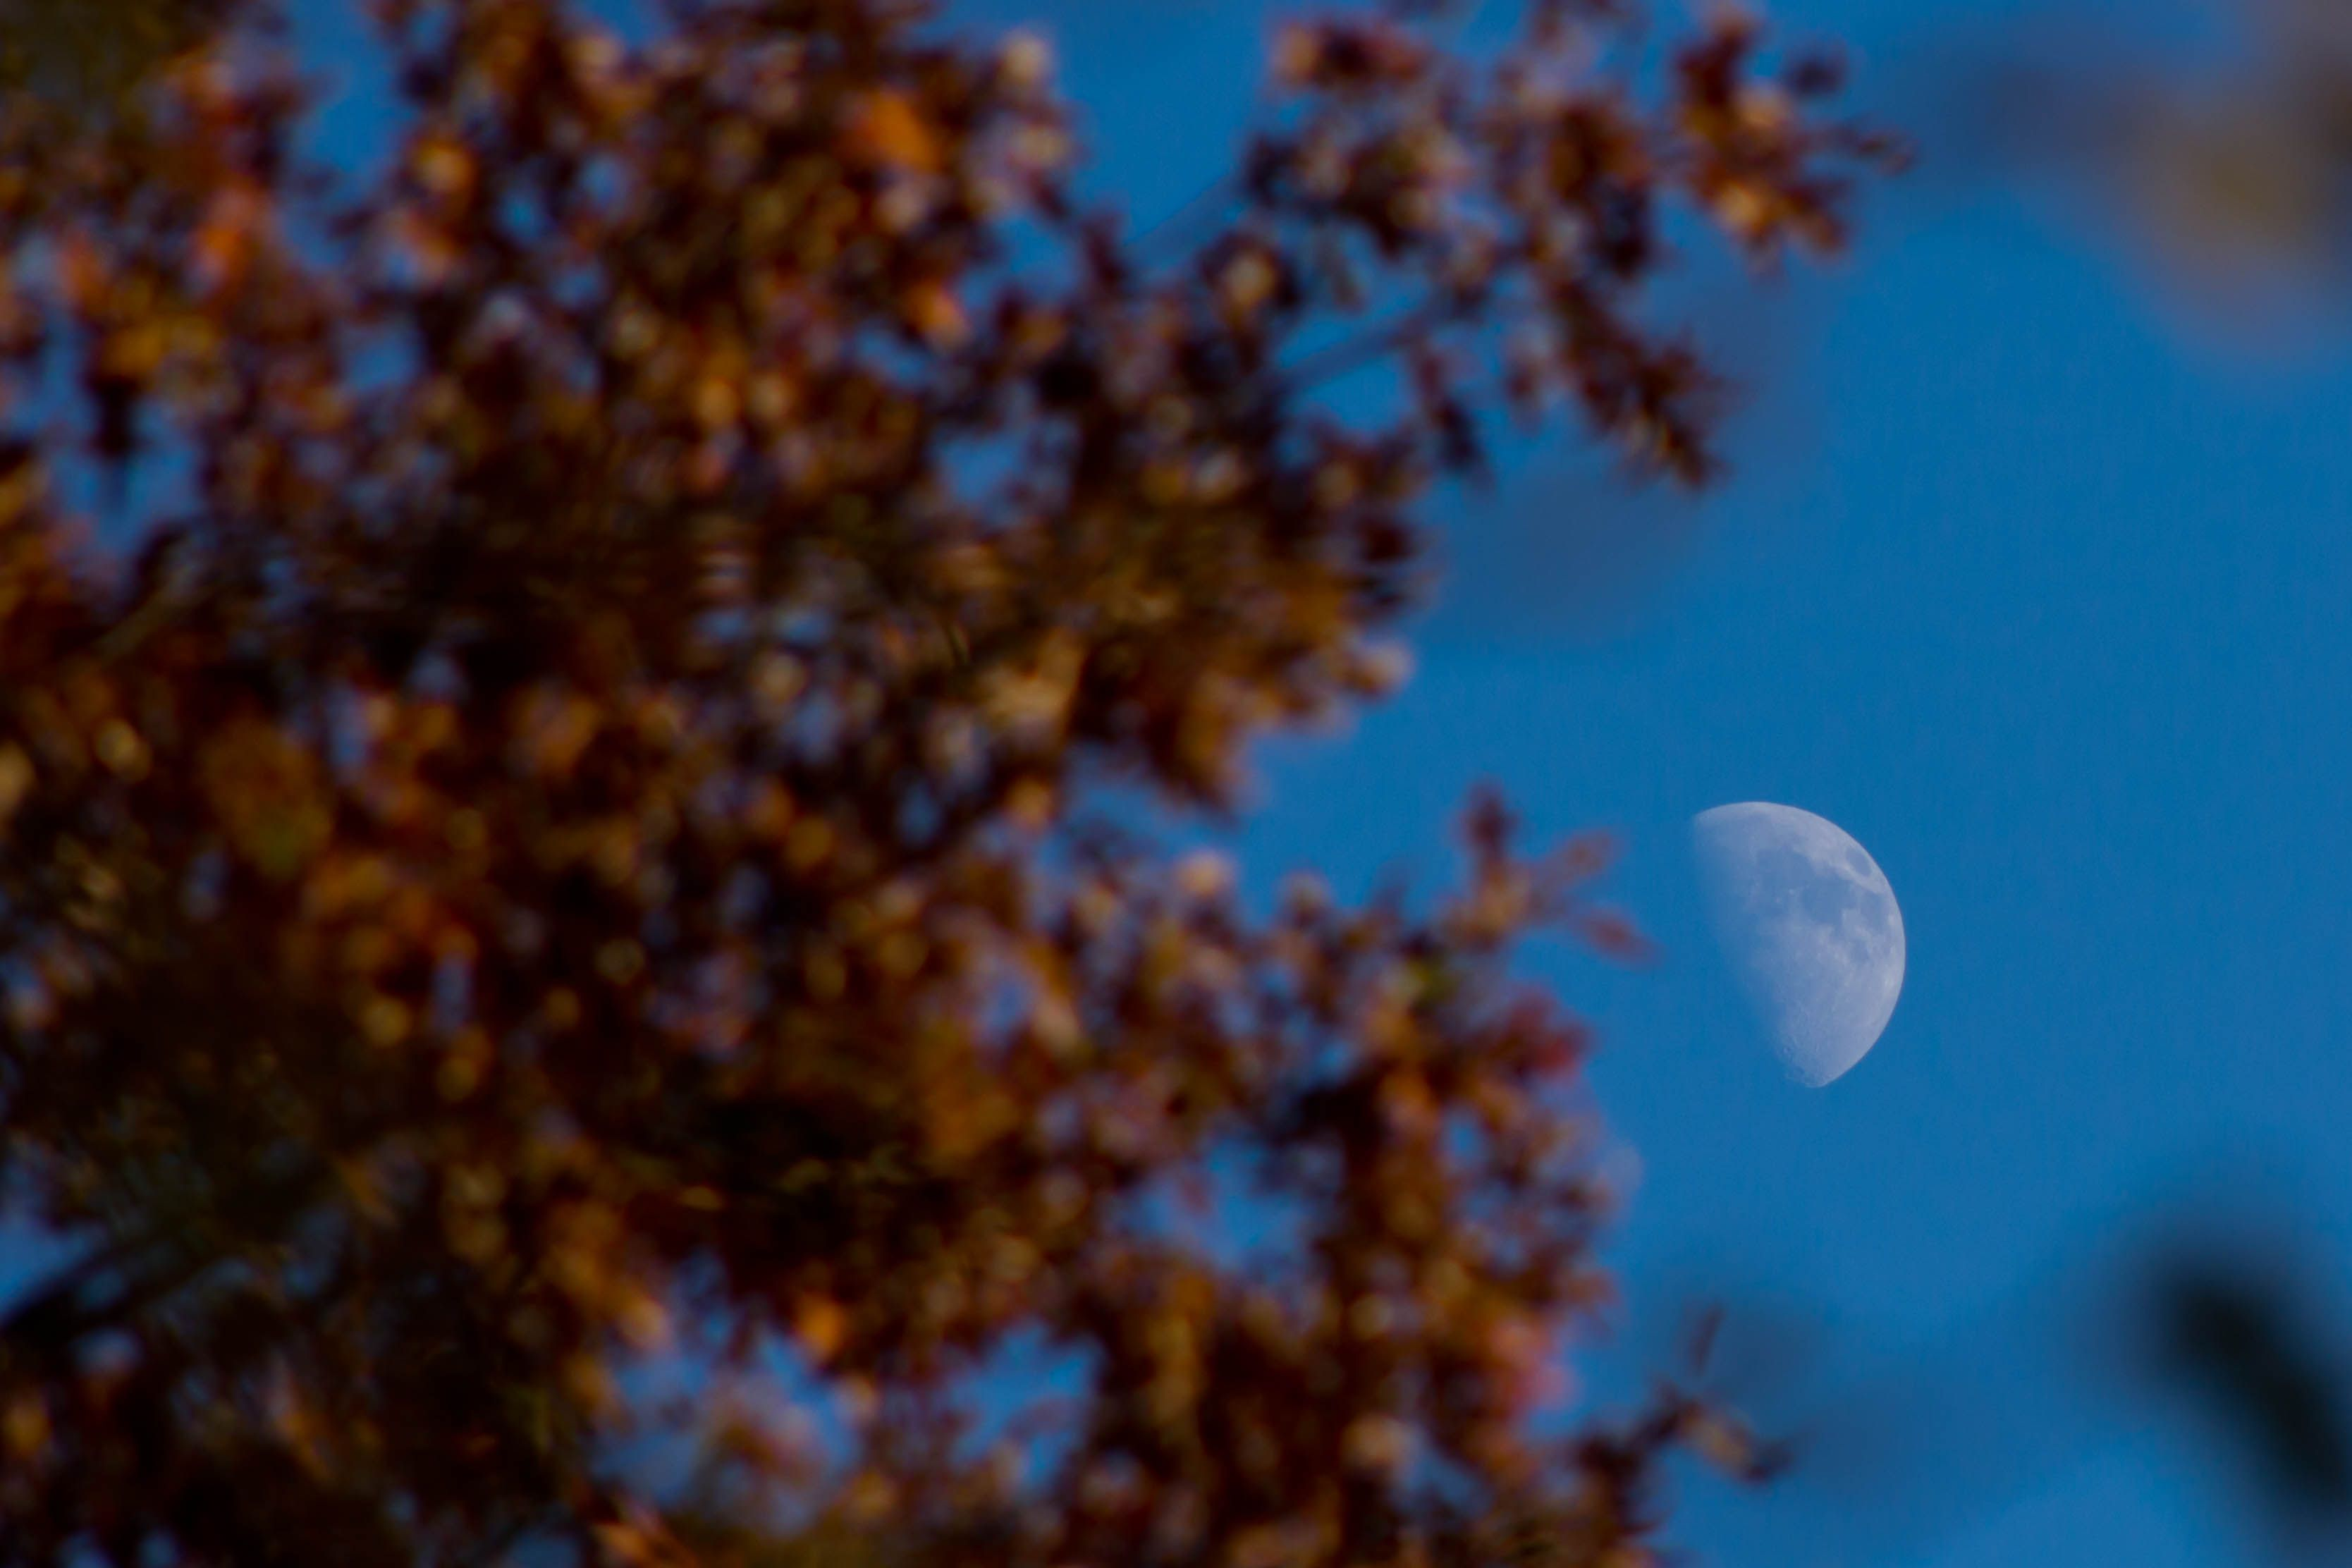 Day 313  So I saw the moon out today while outside. I thought I would try to get a shot of it with some fall colors around it. Don't think it turned out the way I was hoping it would but still kind of neat